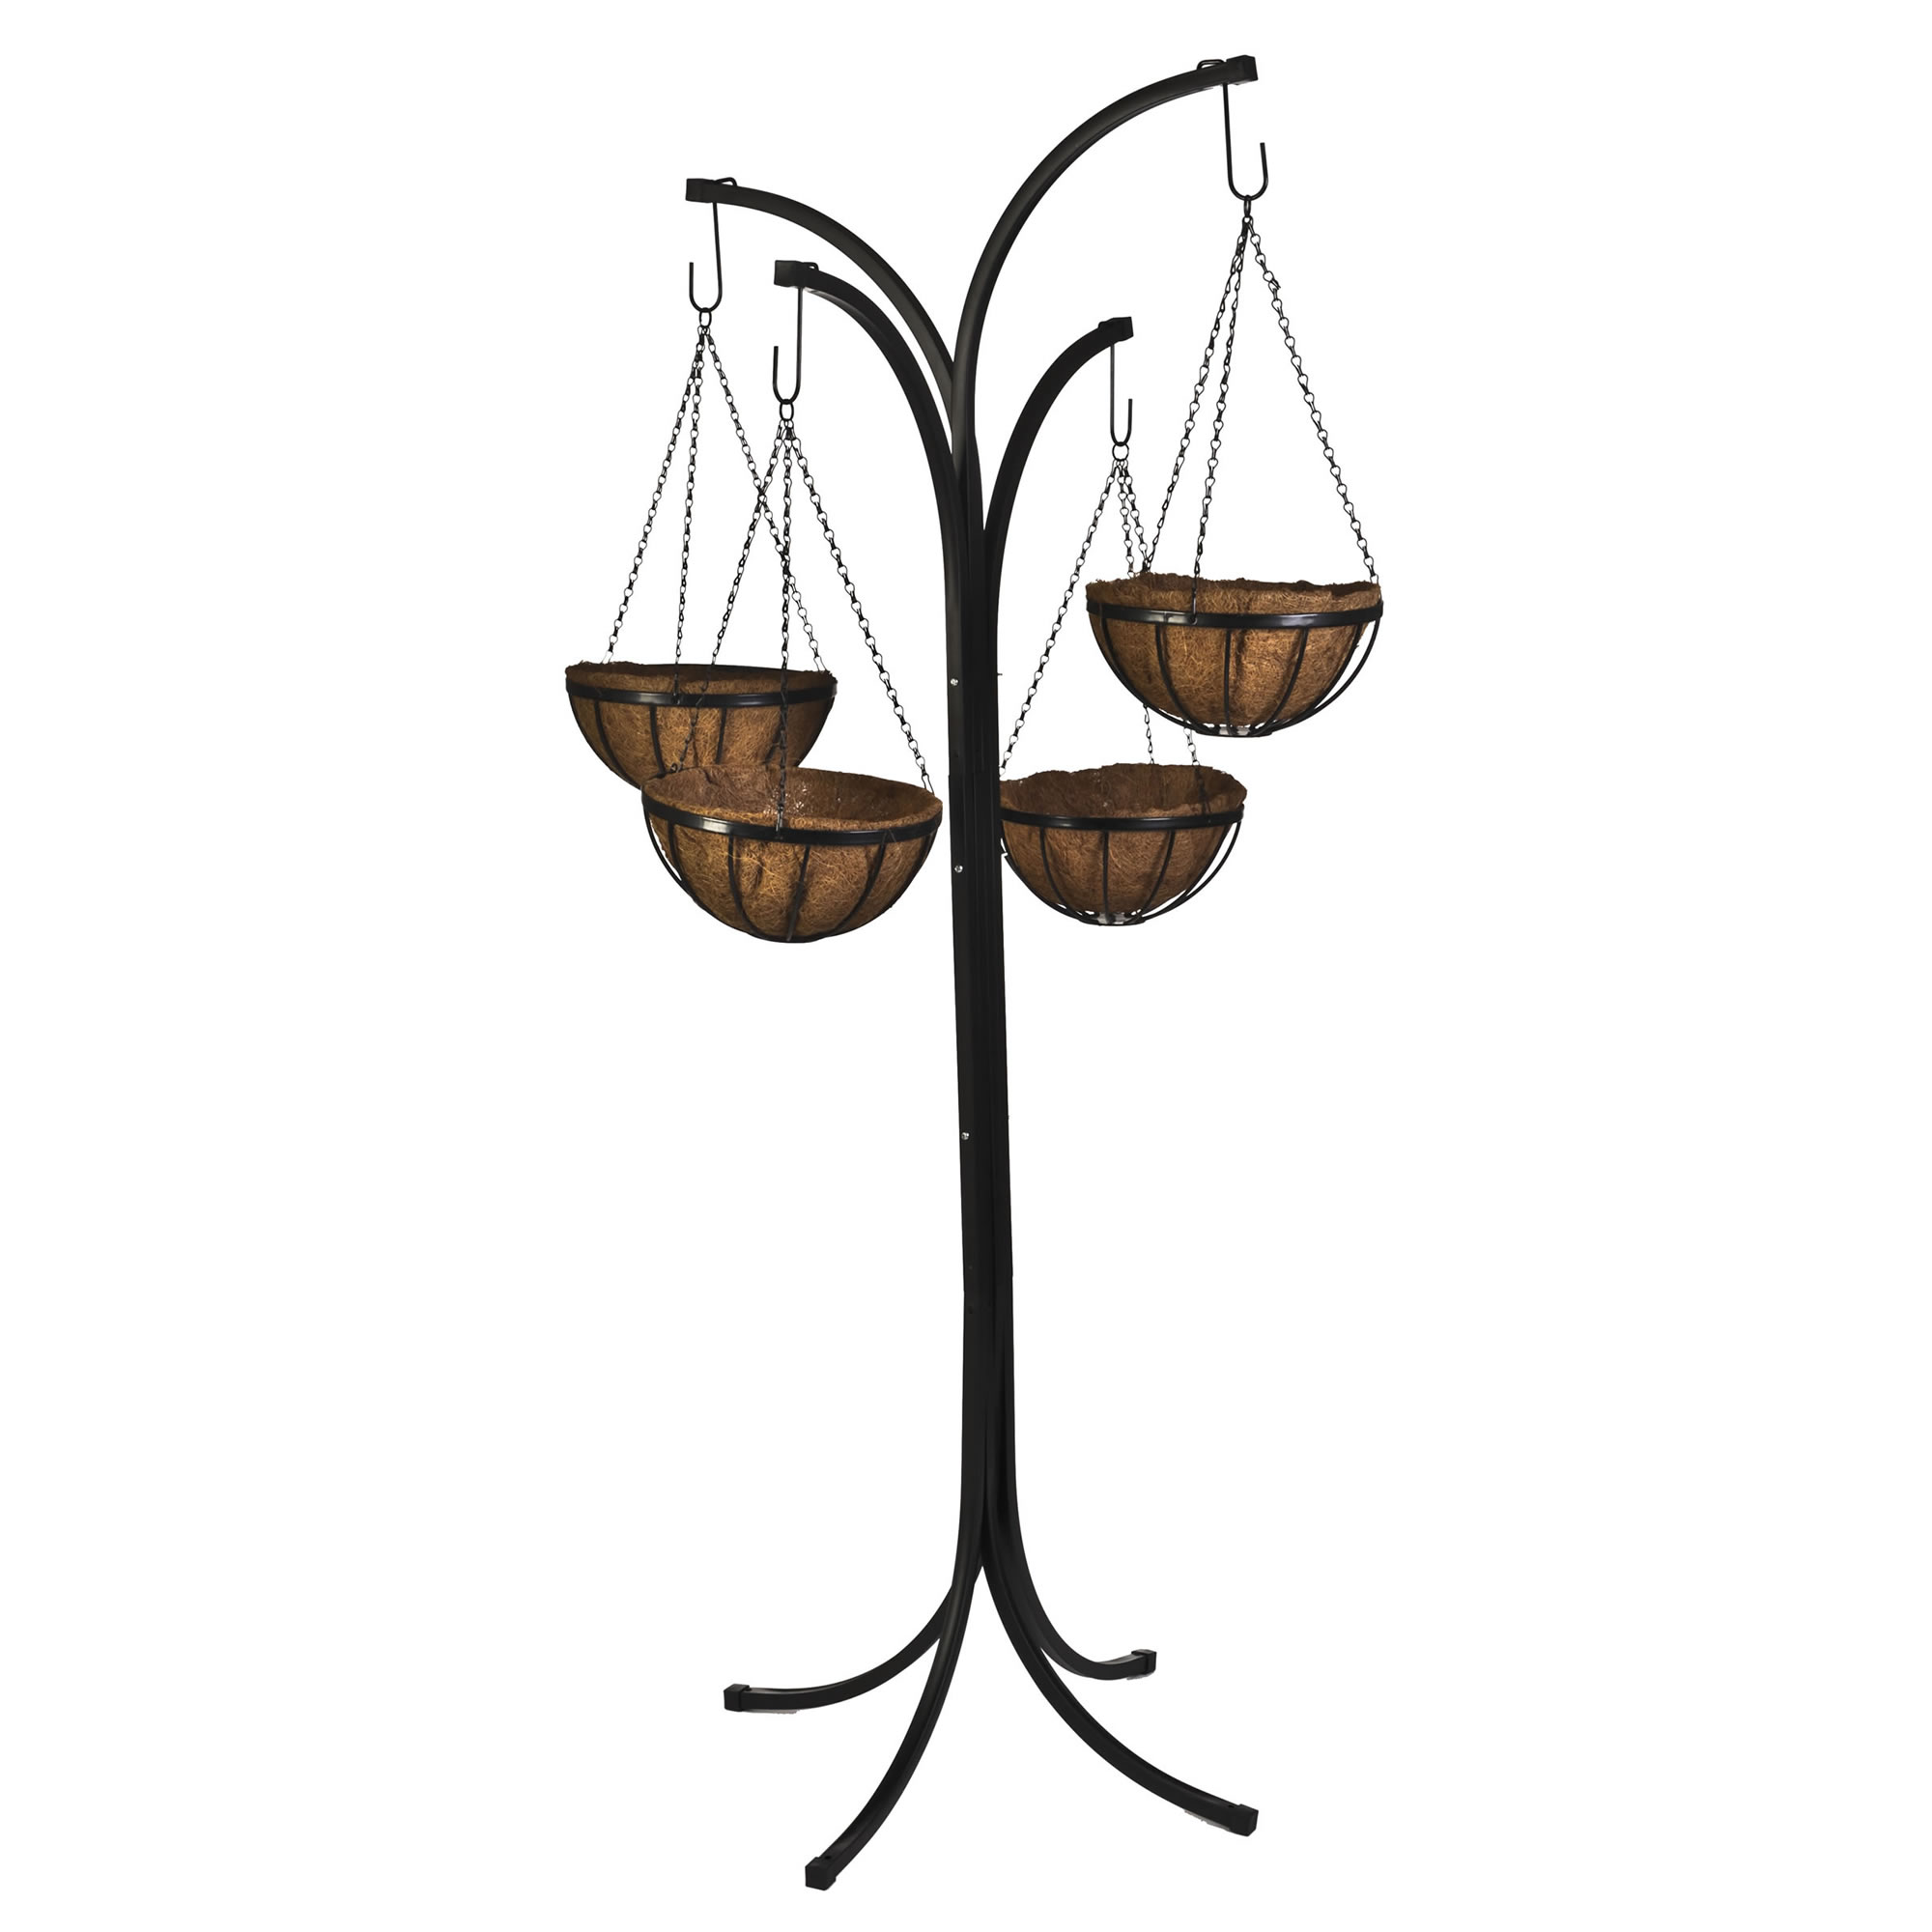 Cobraco 4-Arm Tree with Hanging Baskets - Outdoor Living ... on Hanging Stand For Plants  id=26344